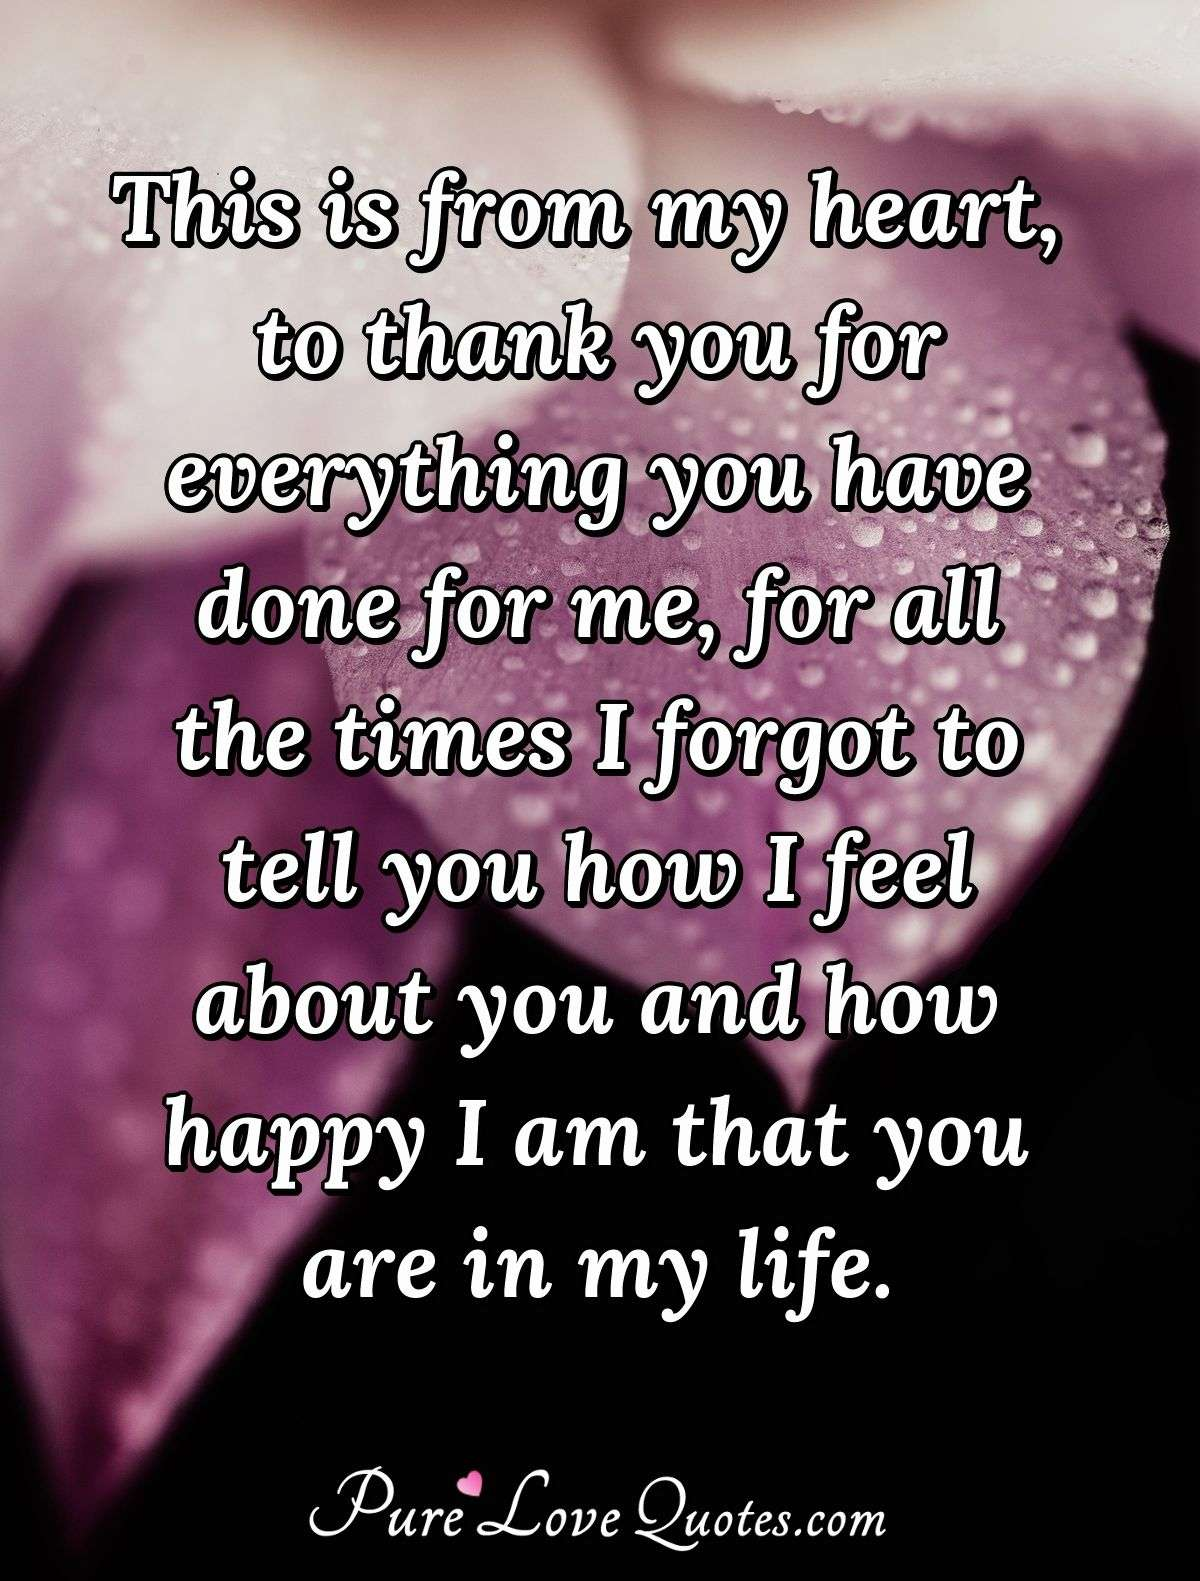 Thank You For Coming Into My Life : thank, coming, Heart,, Thank, Everything, For..., PureLoveQuotes